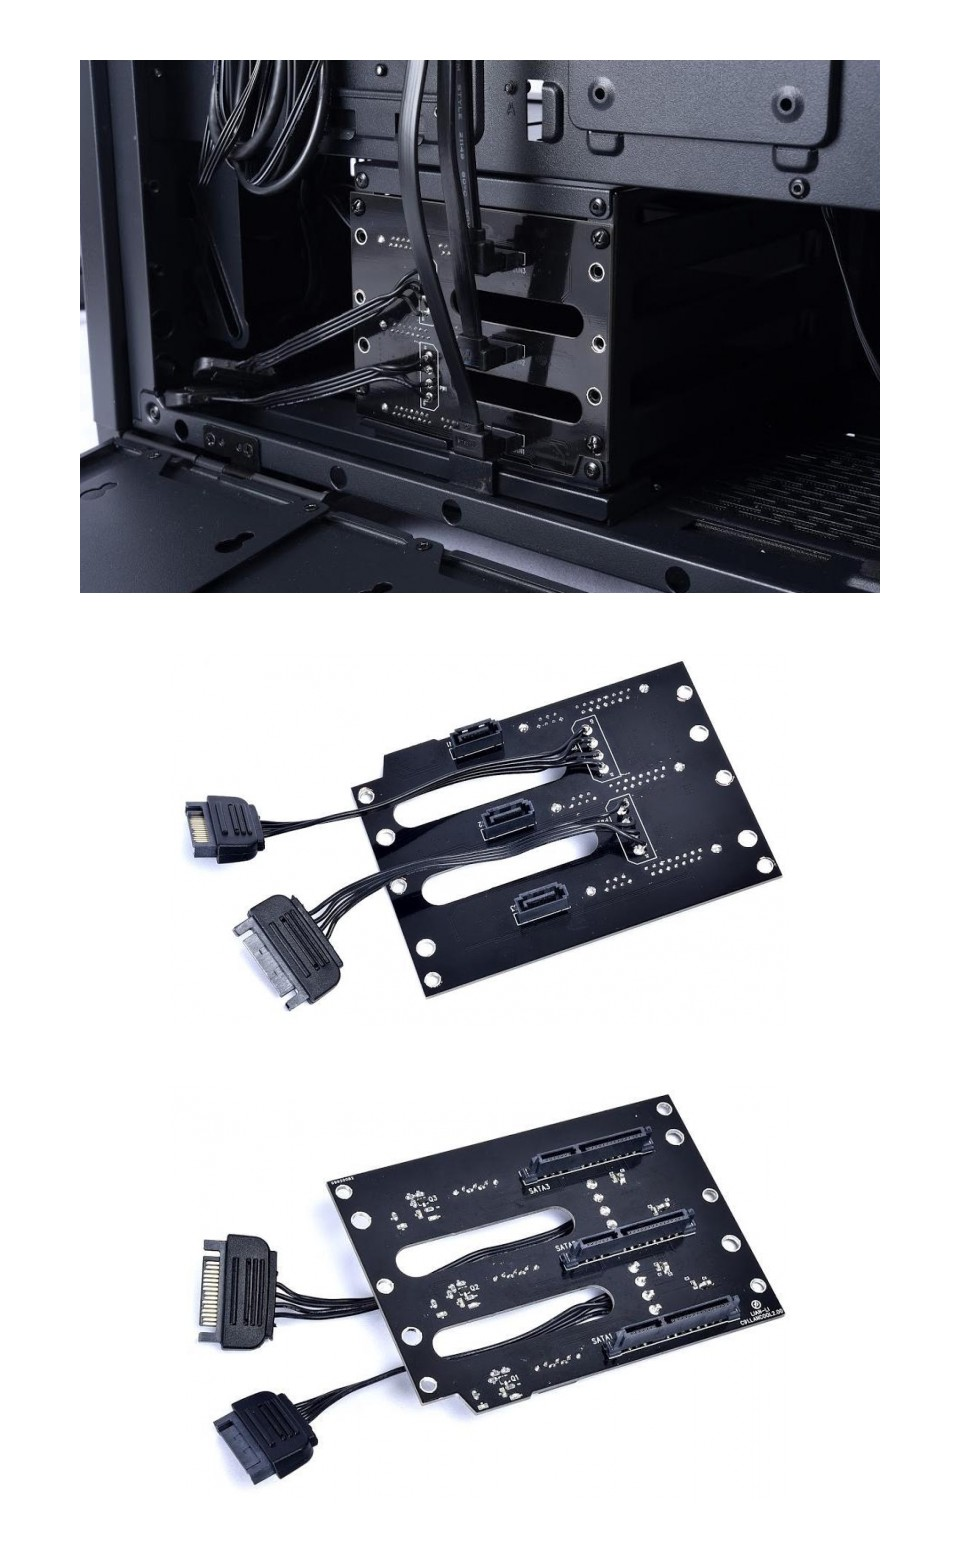 Lian Li HDD and SSD Hot Swap Backpanel For Lancool Two product